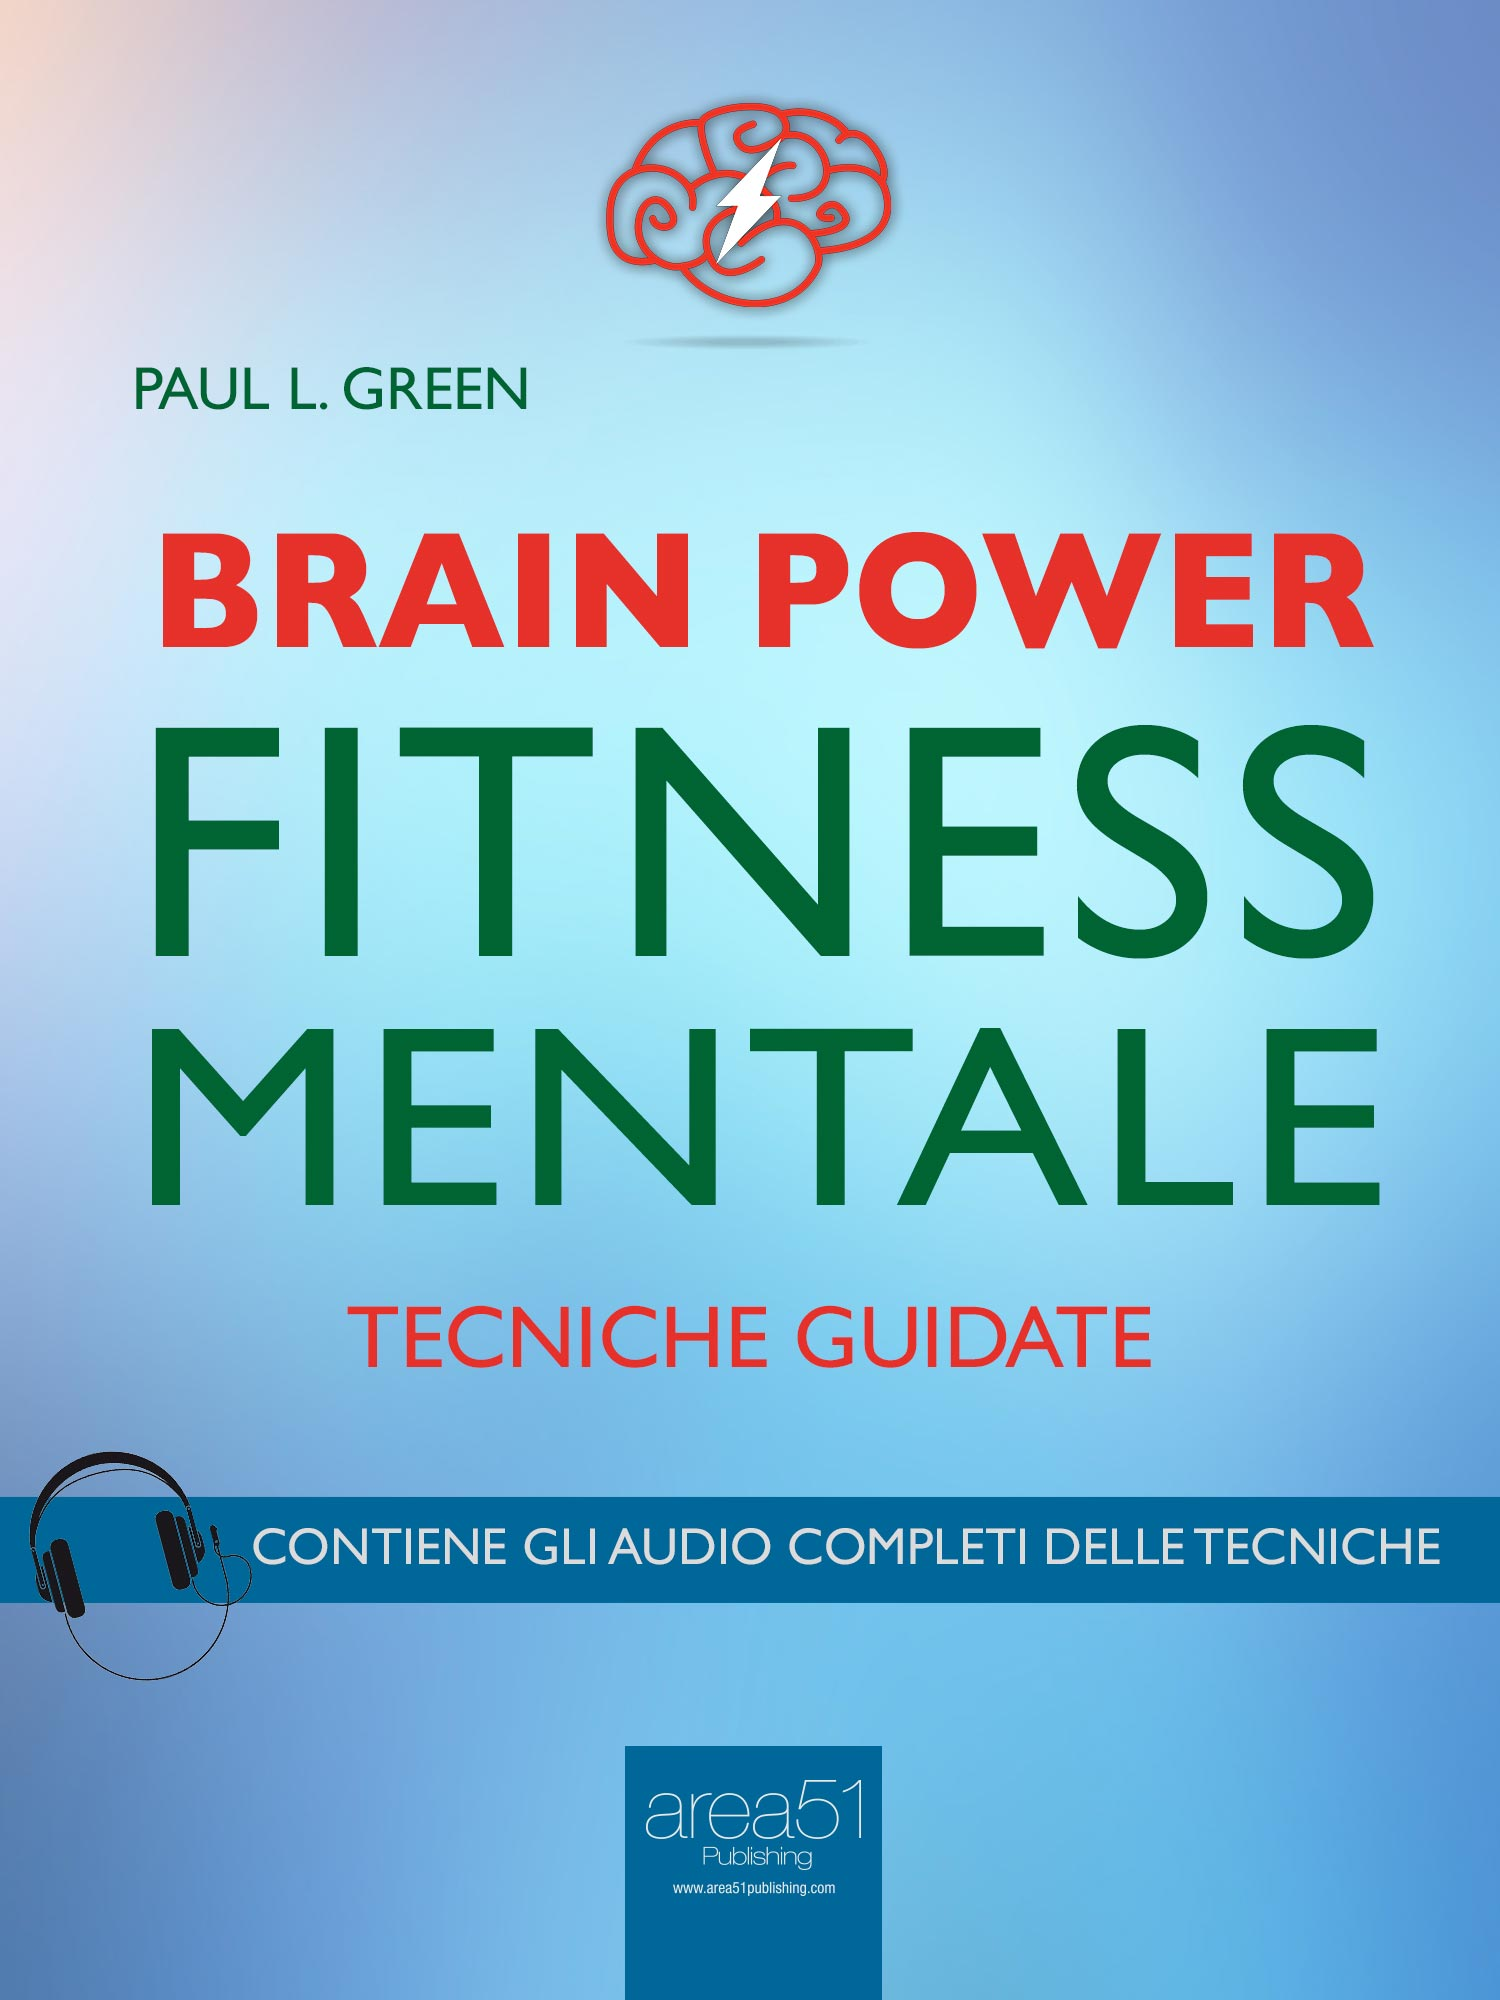 Fitness mentale.-0